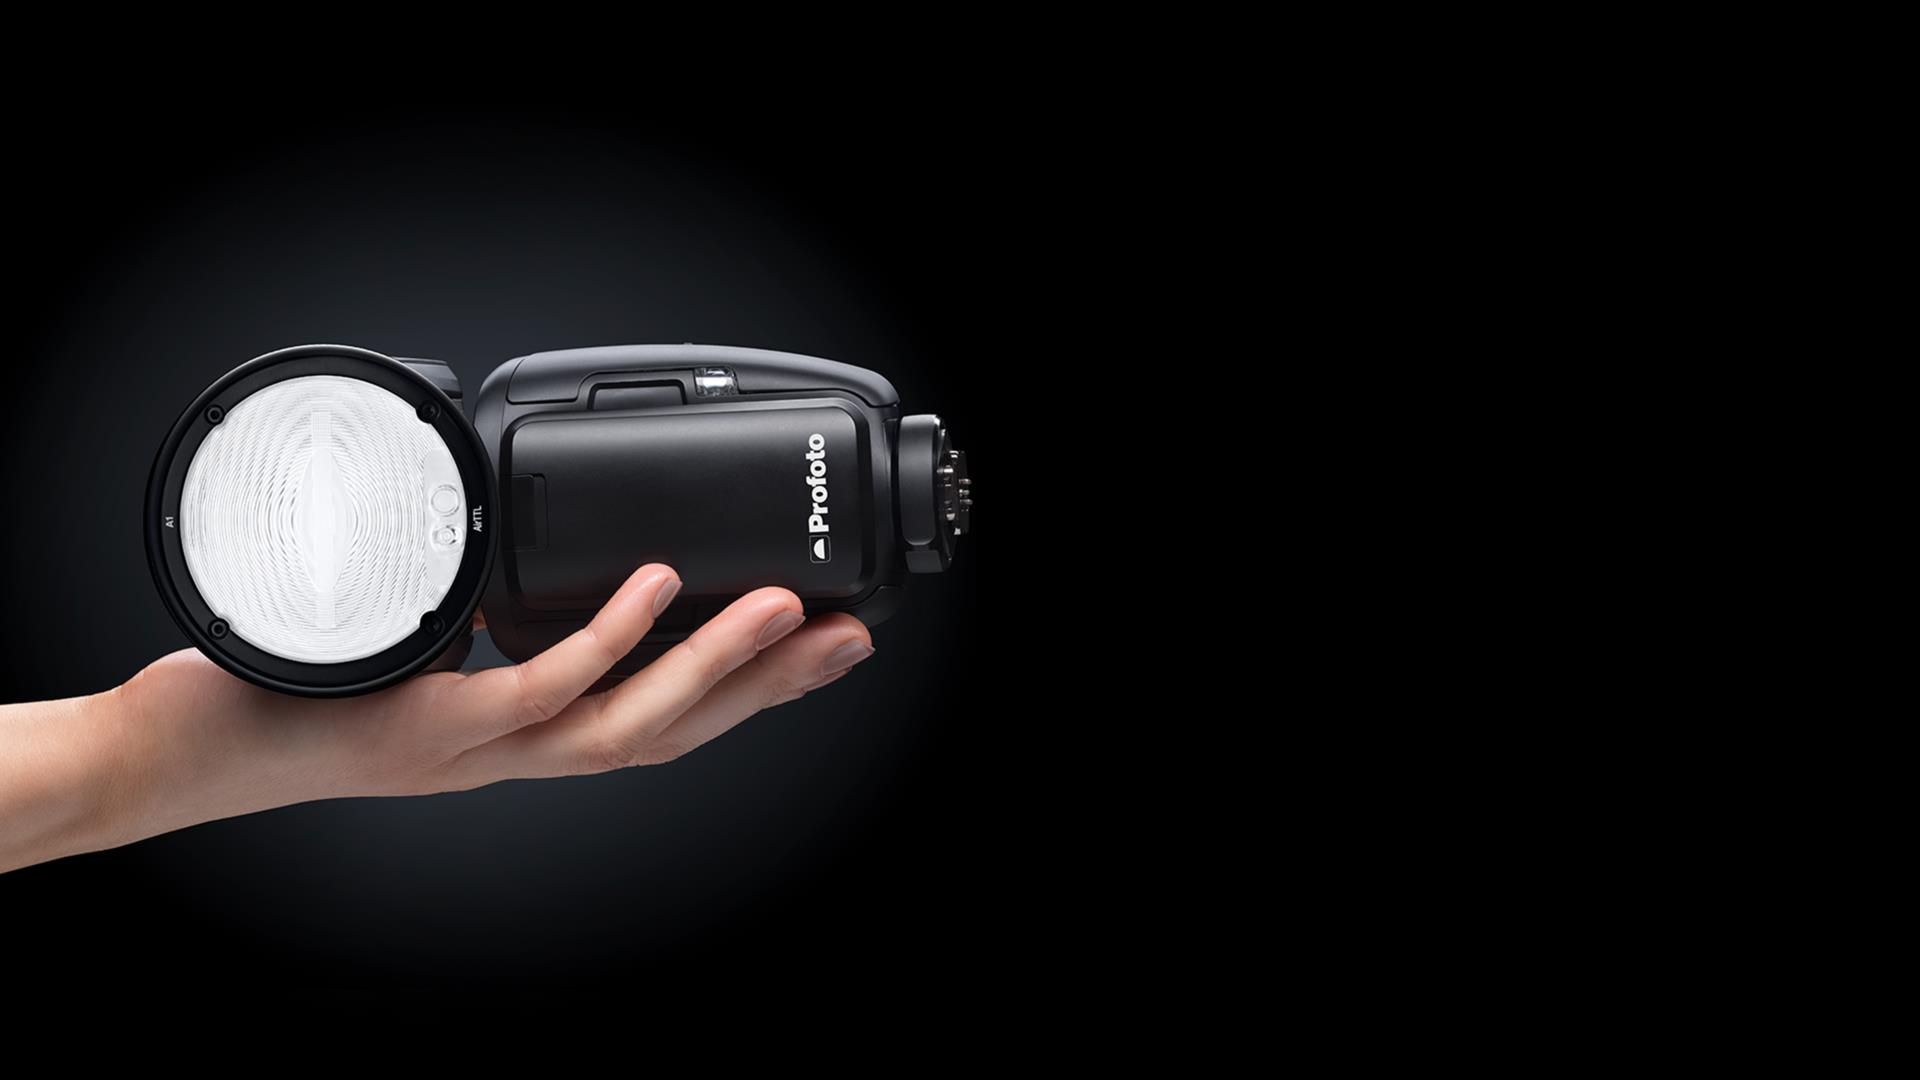 The Profoto A1 Is Worlds Smallest Studio Flash And Profotos Soft Start For Lights First On Camera Digital Photography Review